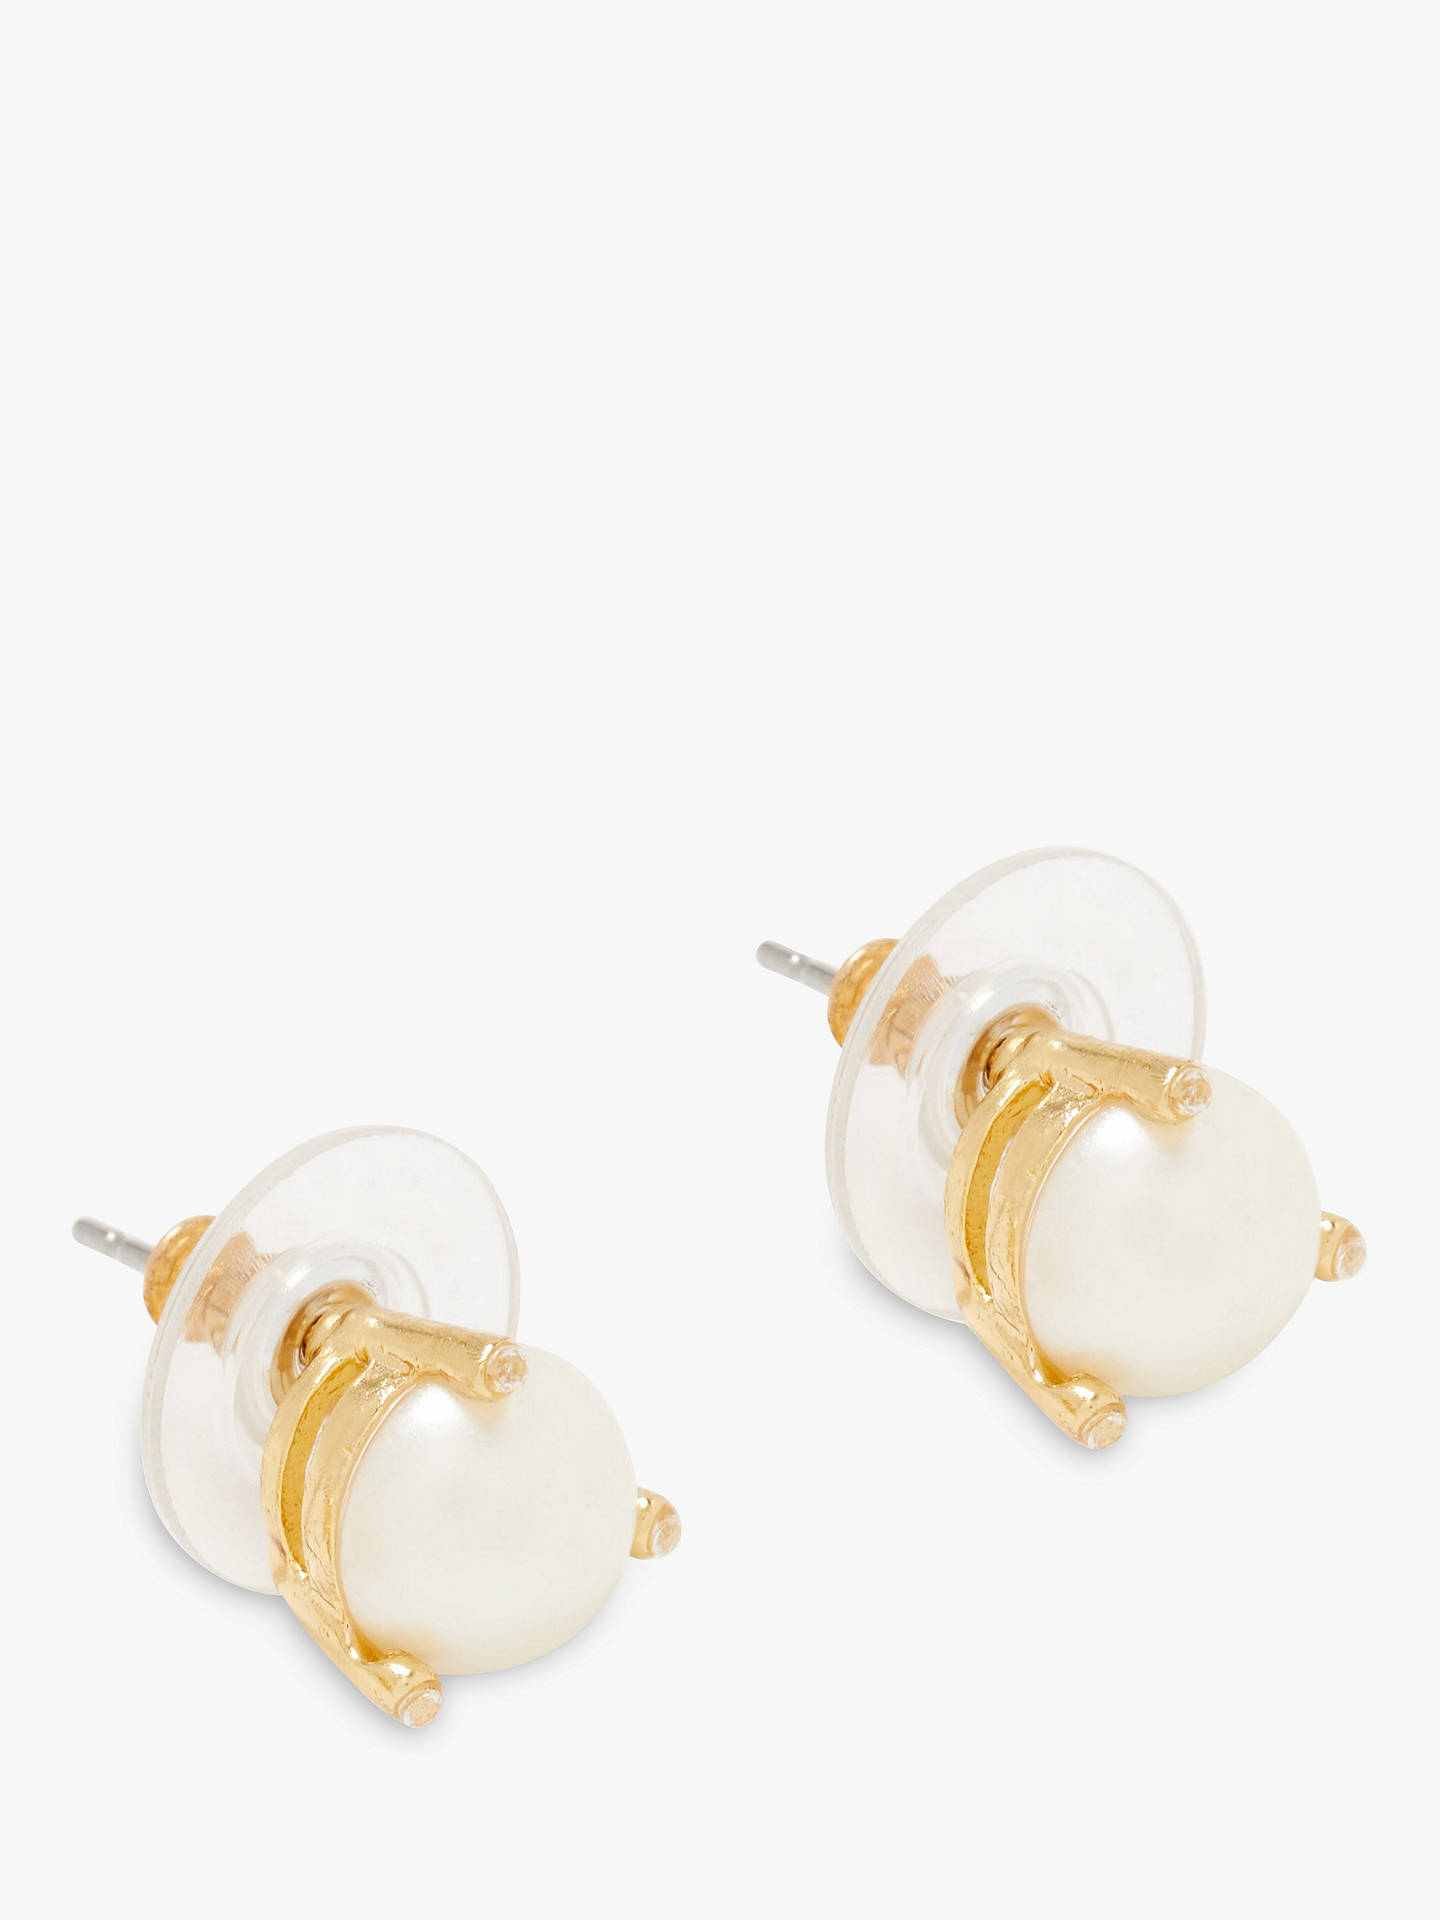 82ee181f0 Buy kate spade new york Faux Pearl and Cubic Zirconia Stud Earrings, Cream  Online at ...